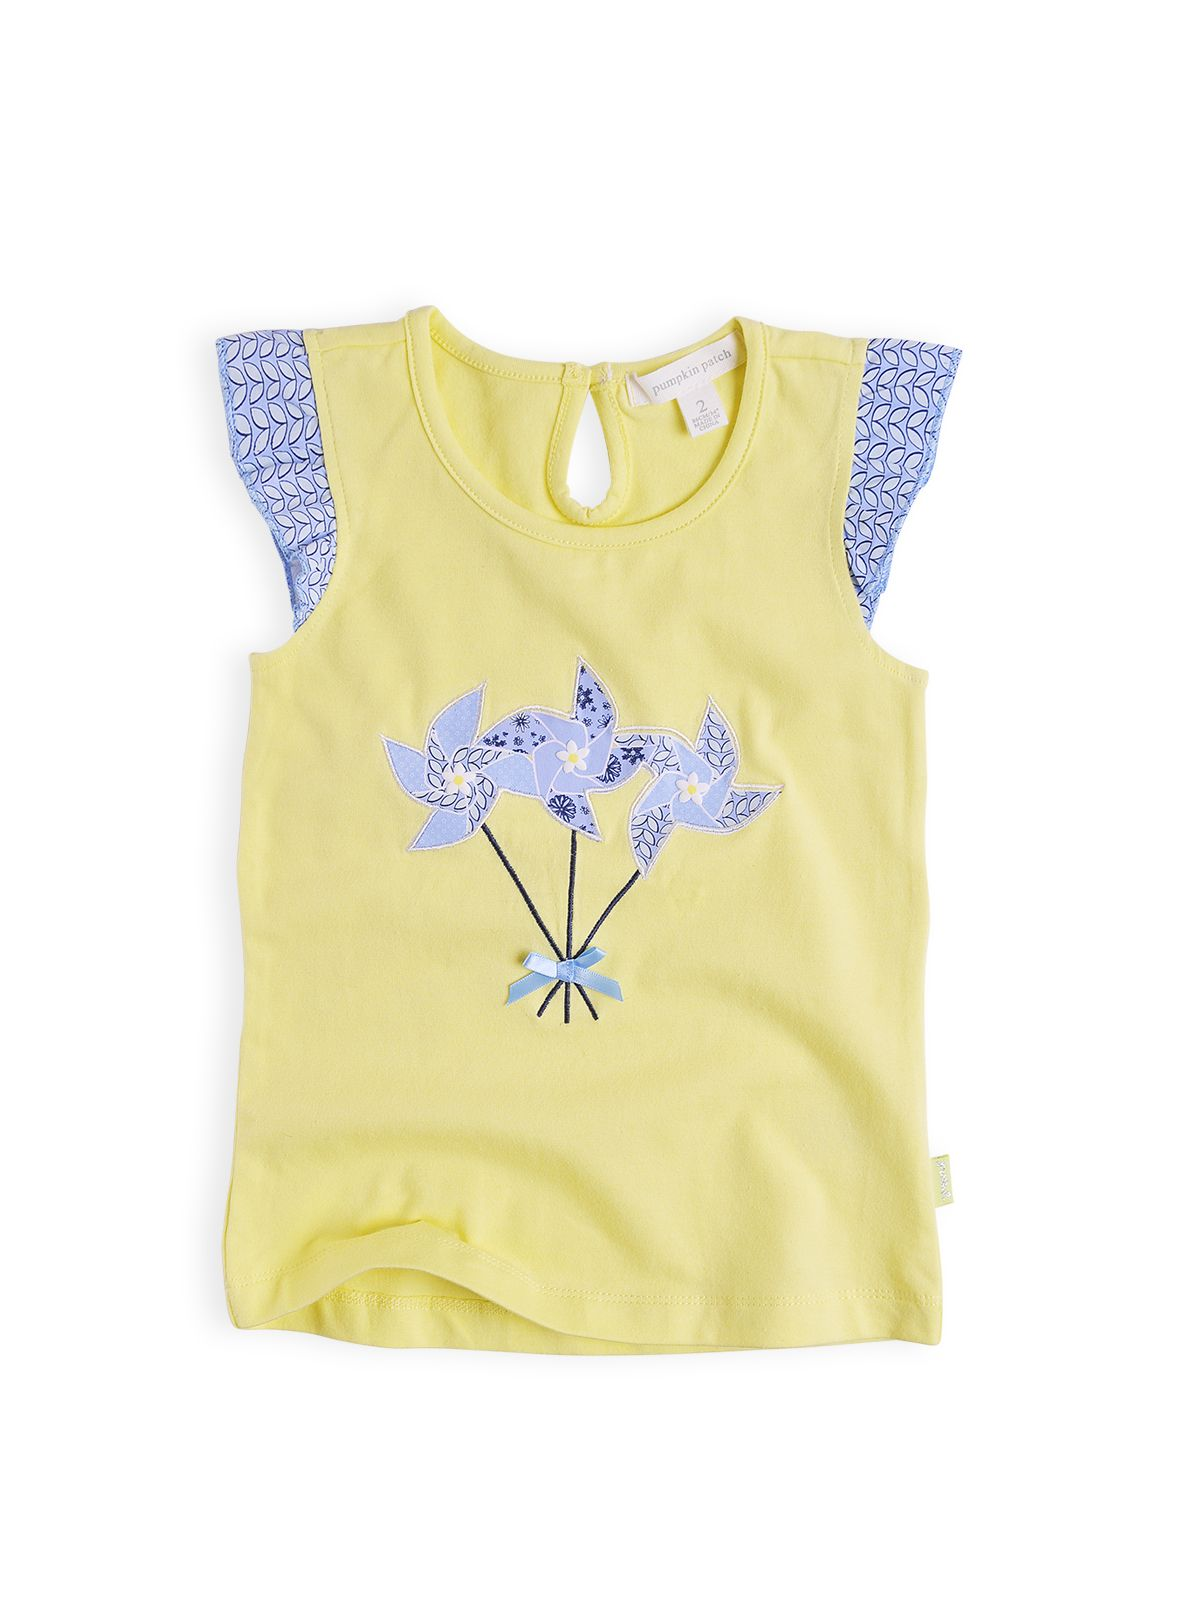 Girls windmill applique top